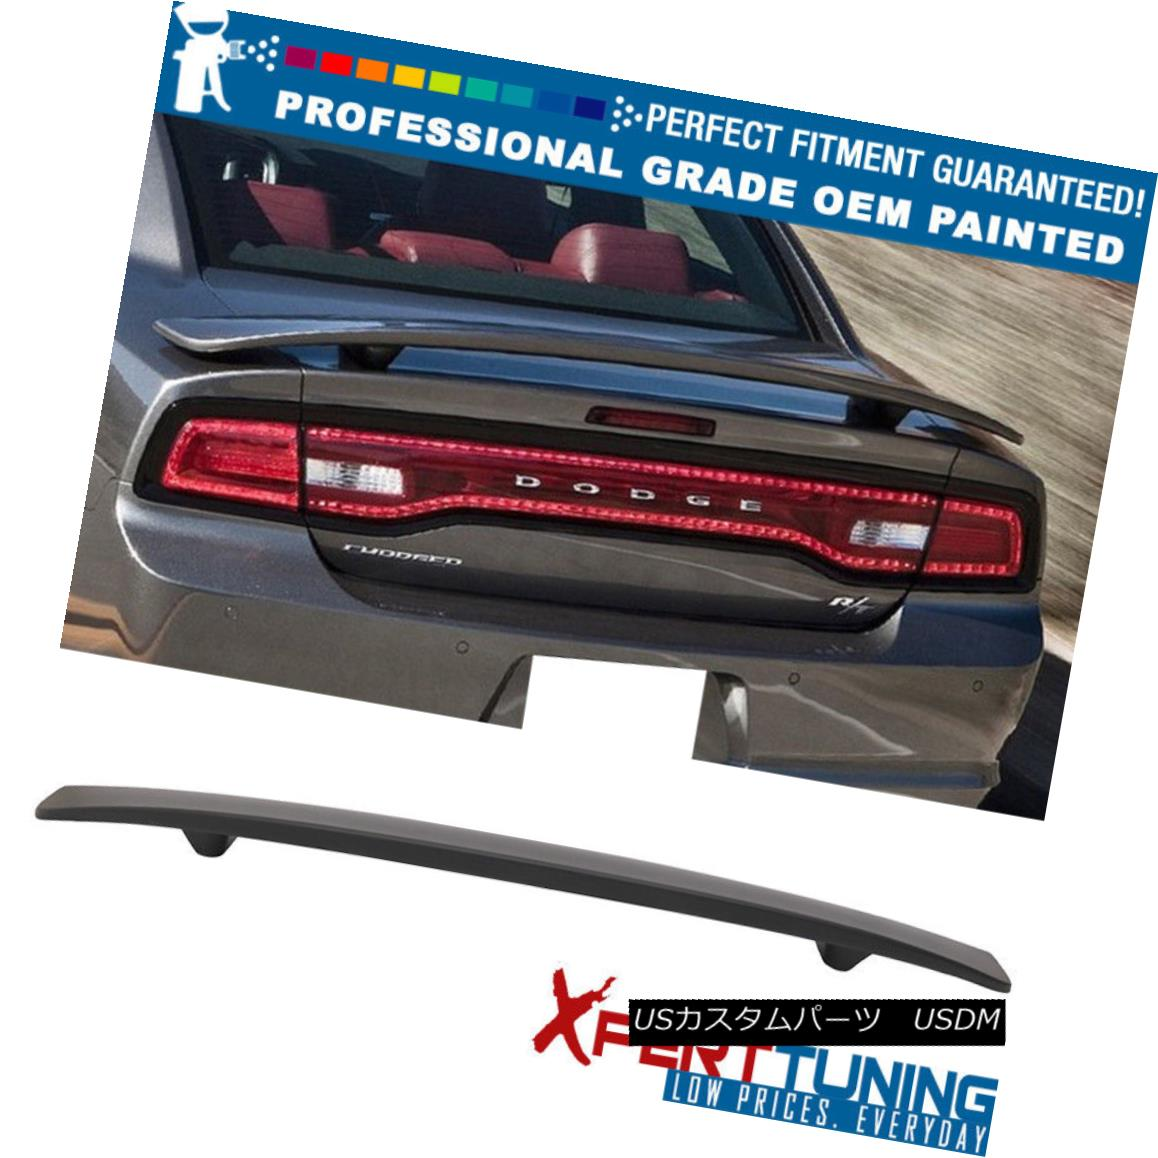 エアロパーツ Fits 11-18 Dodge Charger SRT Painted Trunk Spoiler - OEM Painted Color 11-18 Dodge Charger SRT塗装トランク・スポイラー - OEM塗装カラーに適合